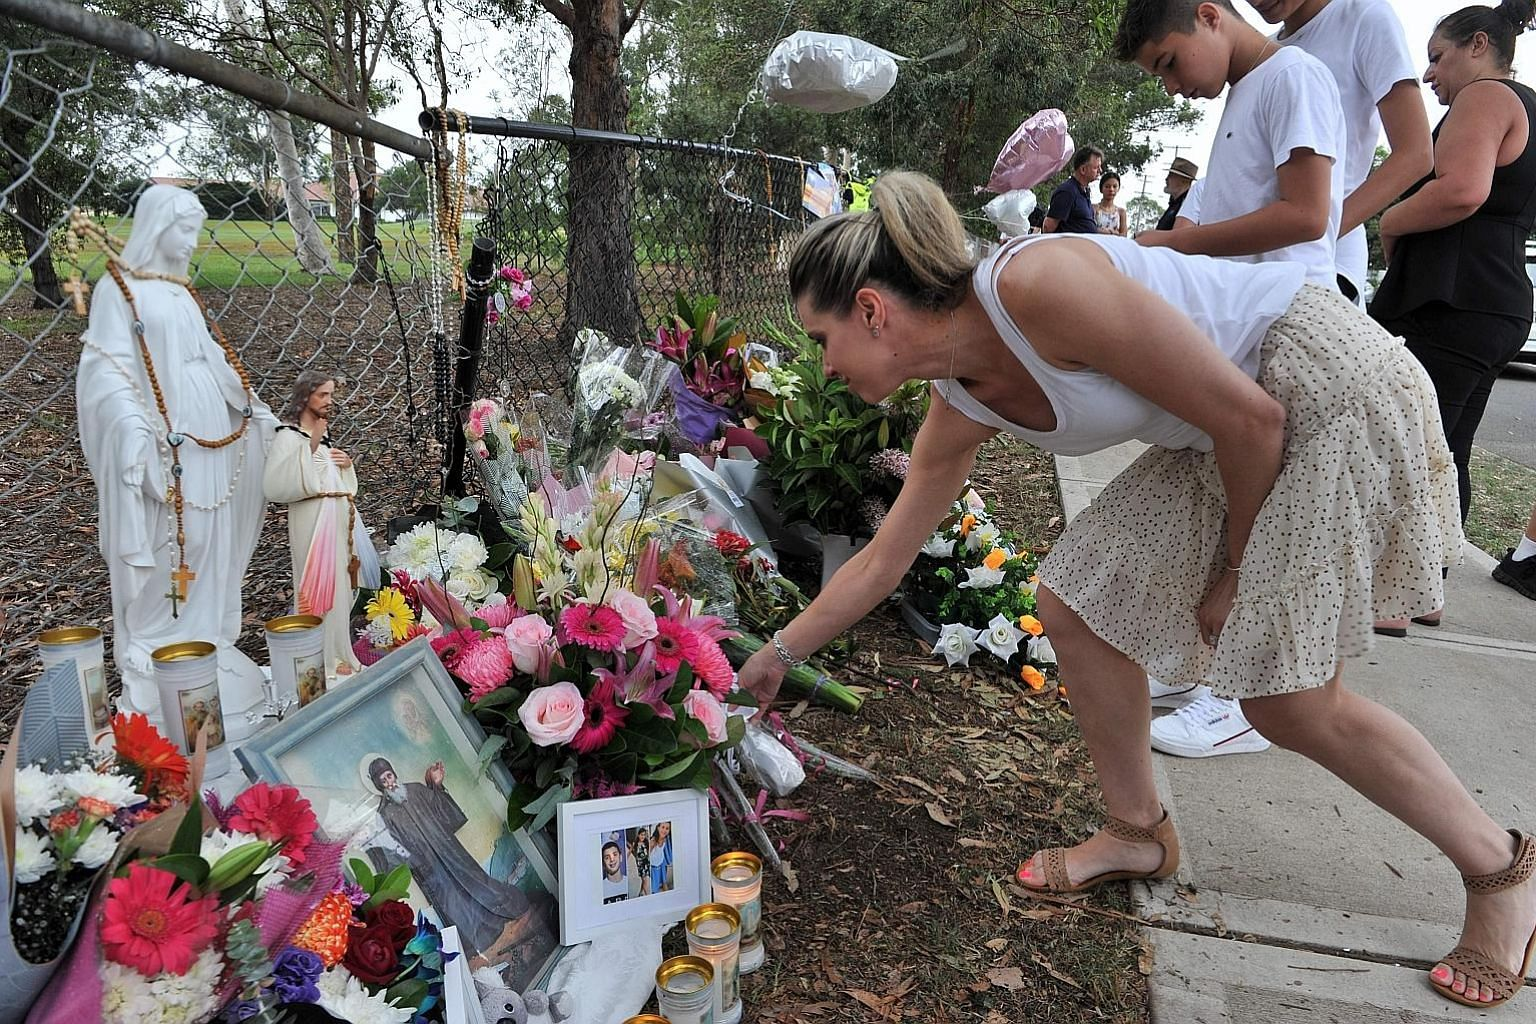 People gathering yesterday at a makeshift memorial at the site of an accident, which killed two sisters, their brother and a cousin, in the Oatlands suburb of Sydney. Three other children were seriously injured. A 29-year-old driver was charged with